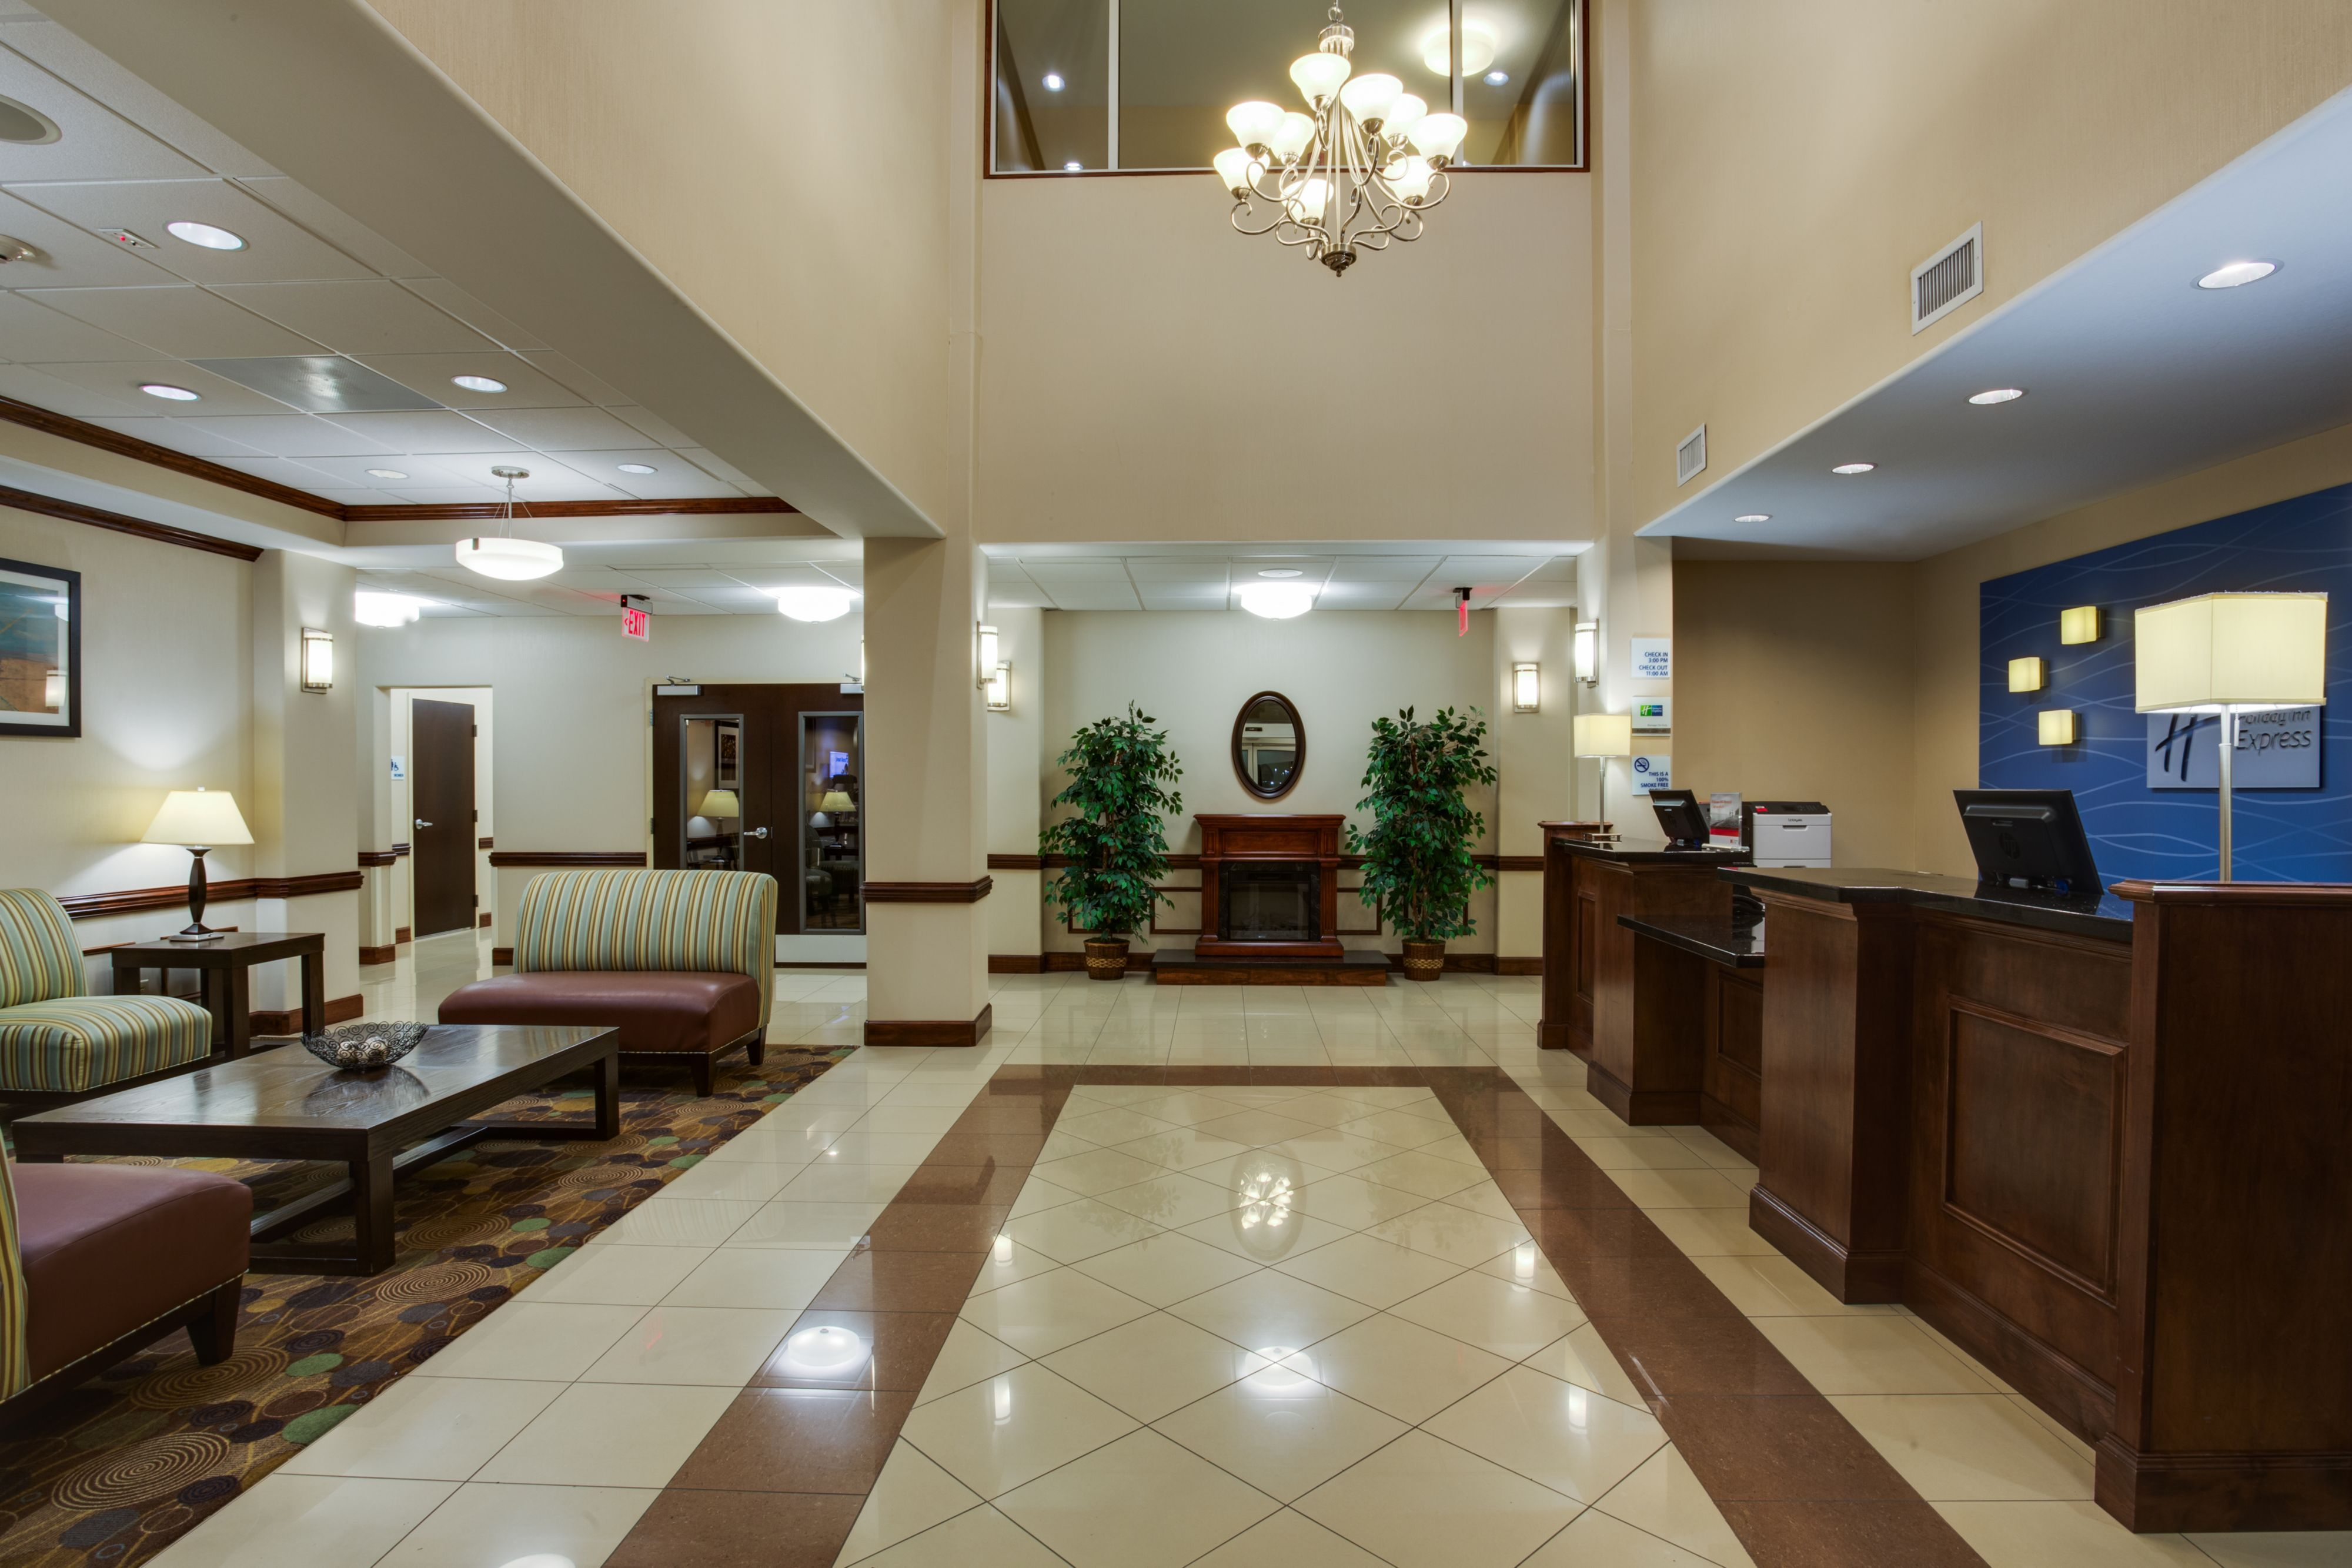 Holiday Inn Express & Suites Moultrie image 4